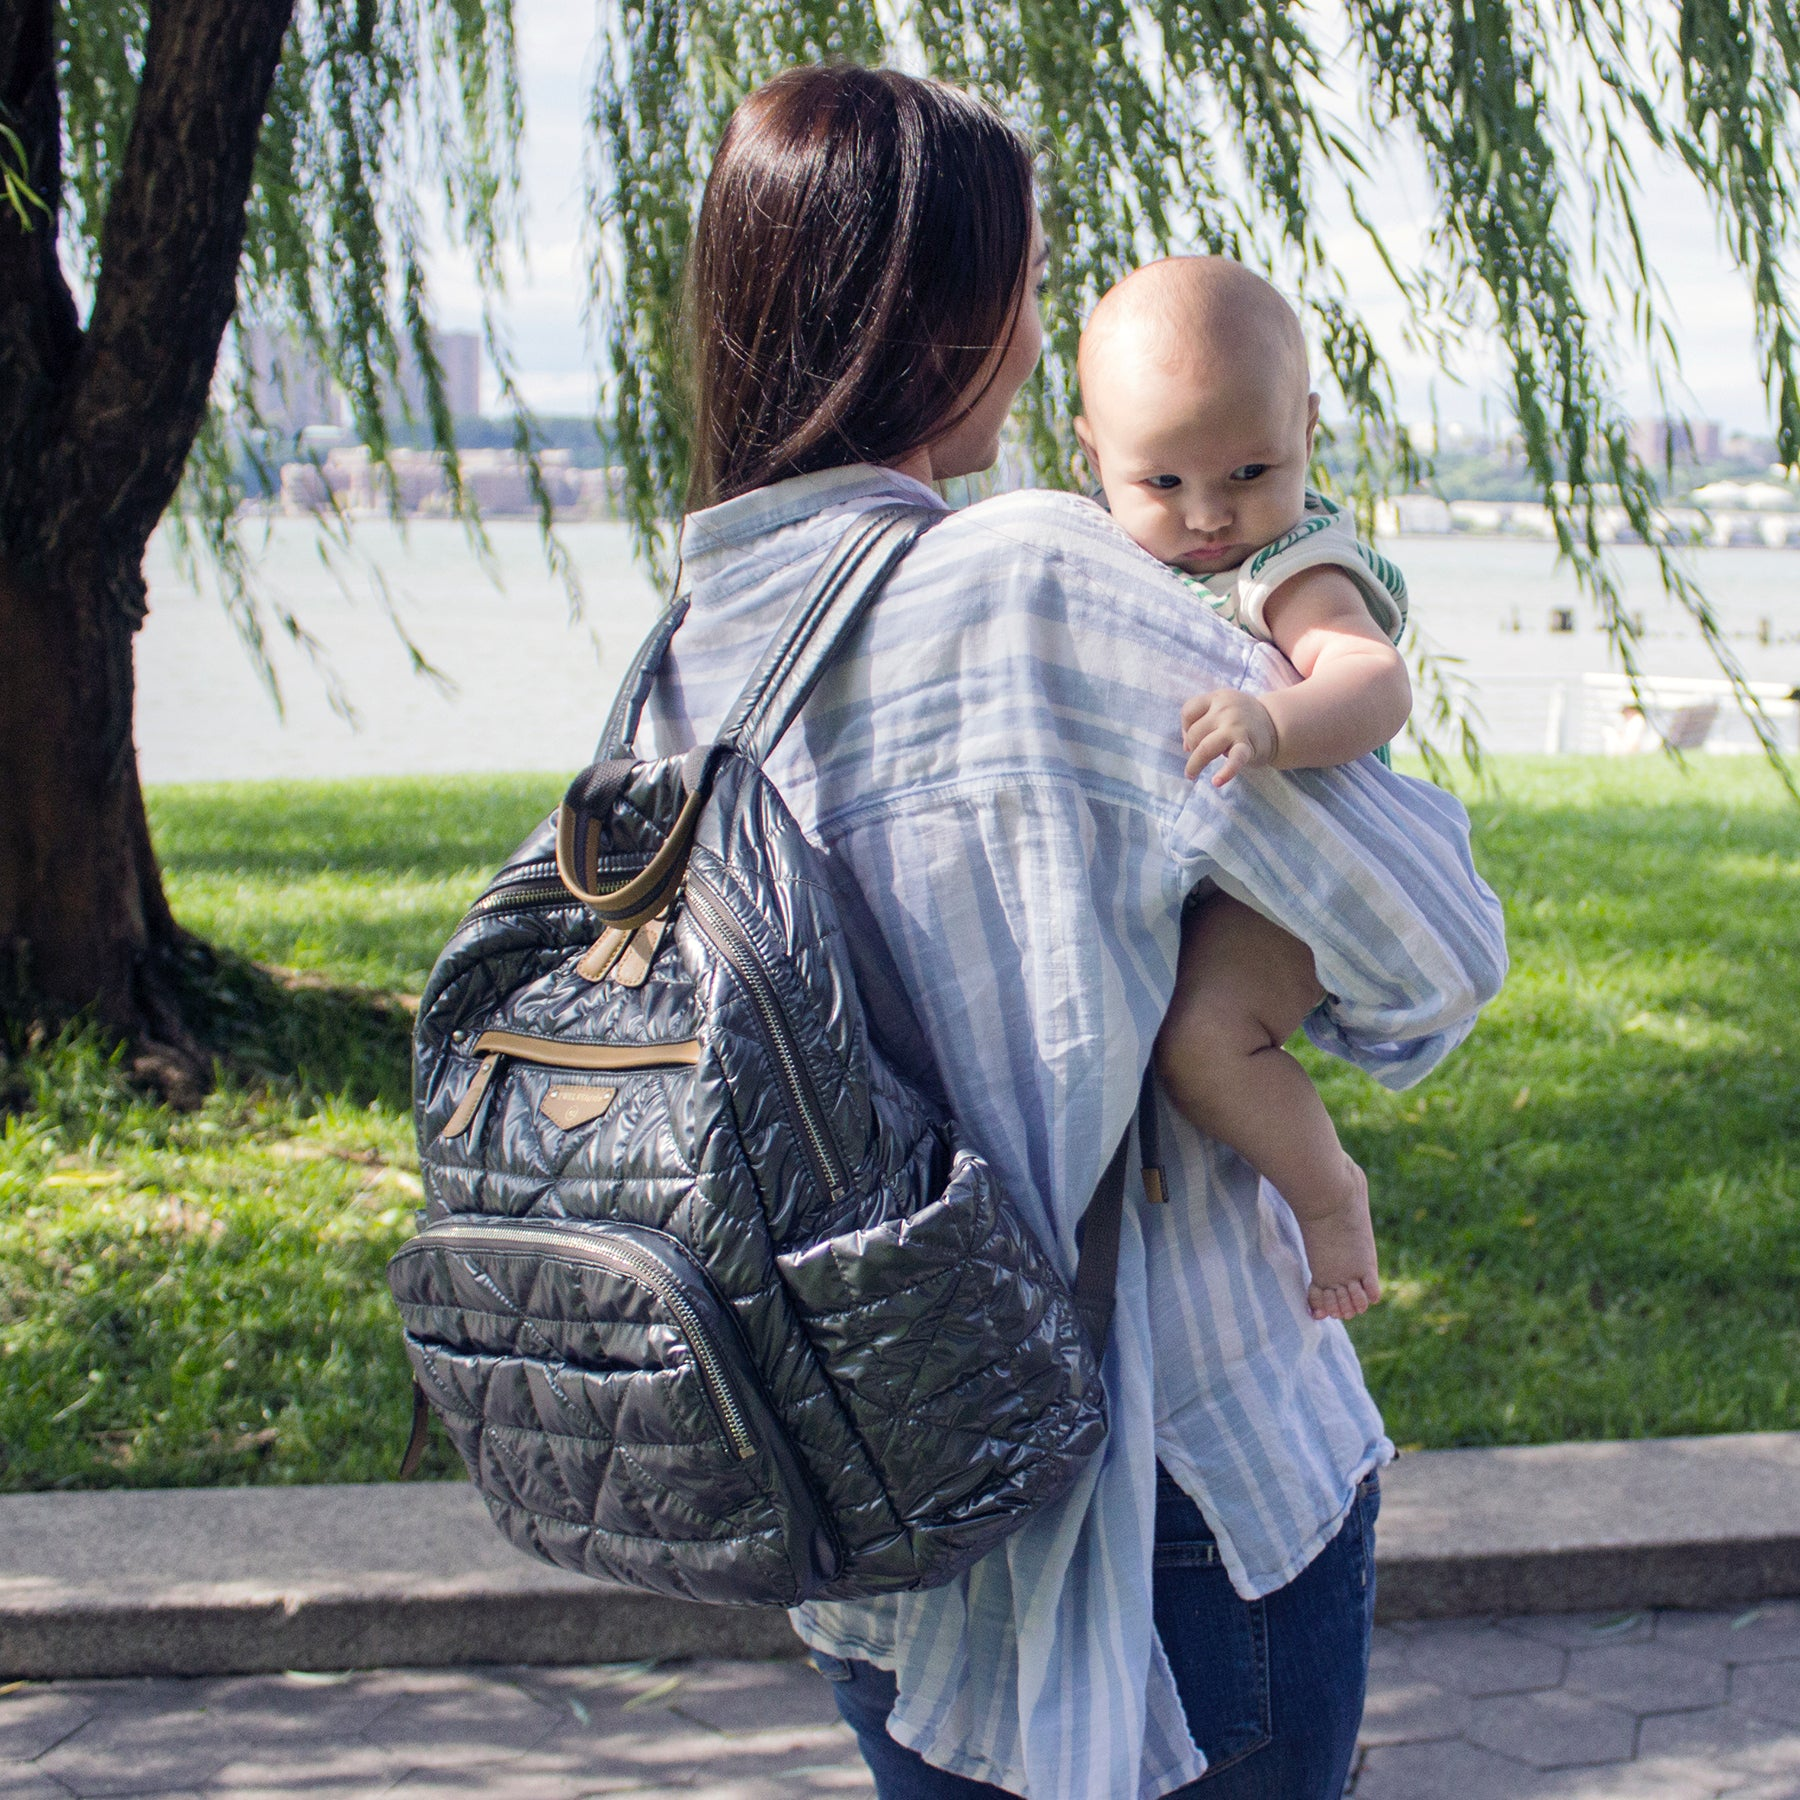 Woman wearing the Pewter companion backpack holding a baby.